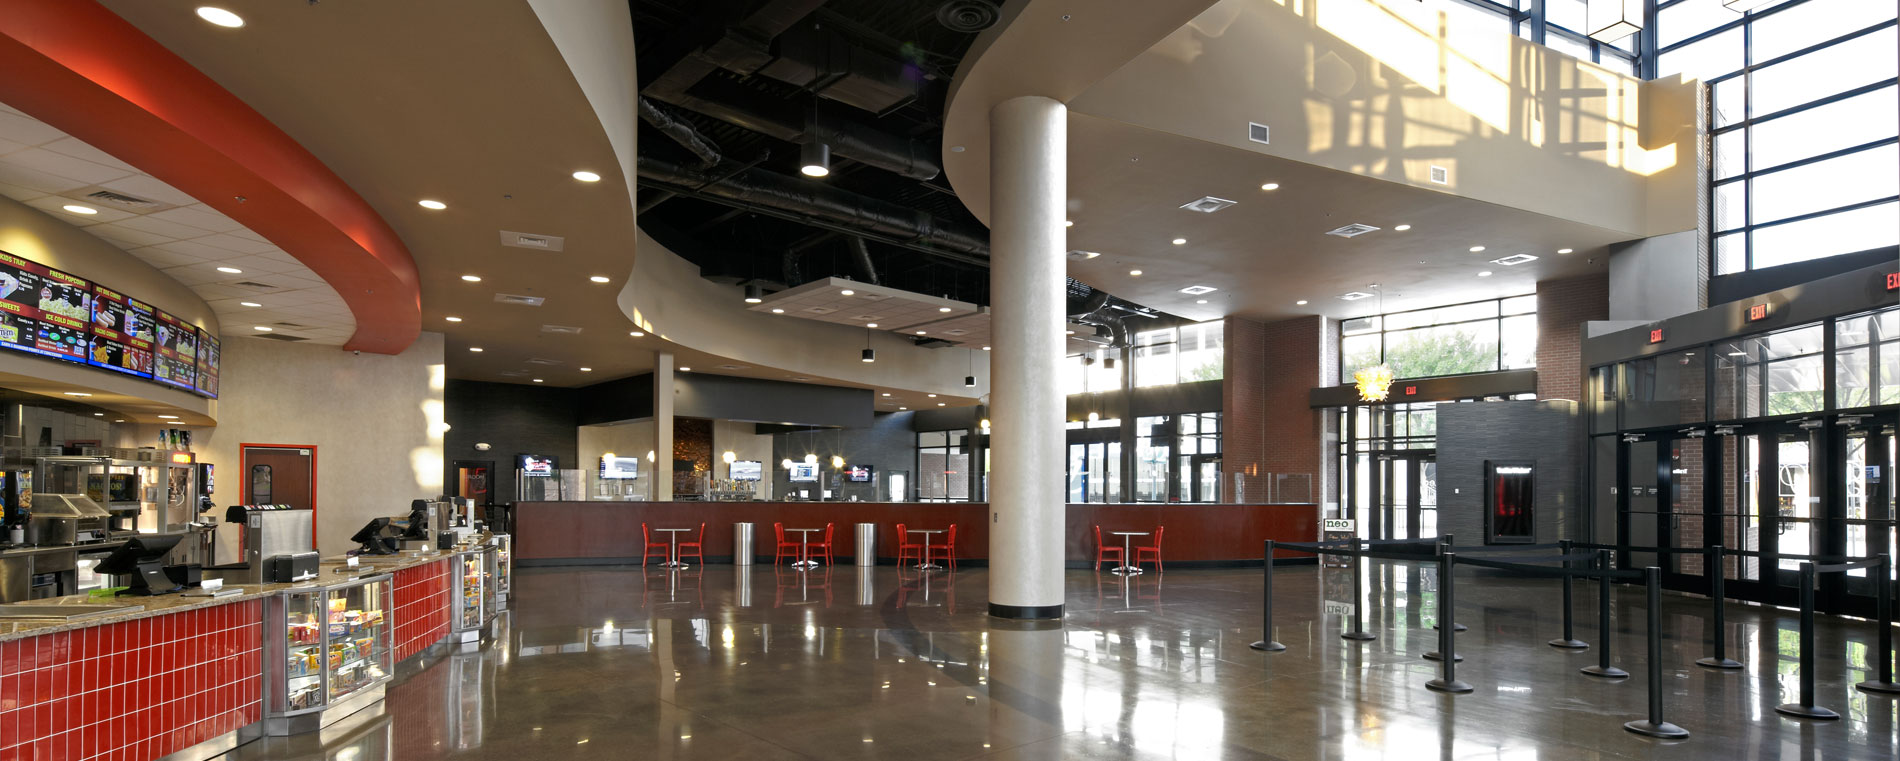 Cinemark City Center 12 at Oyster Point in Newport News Virginia